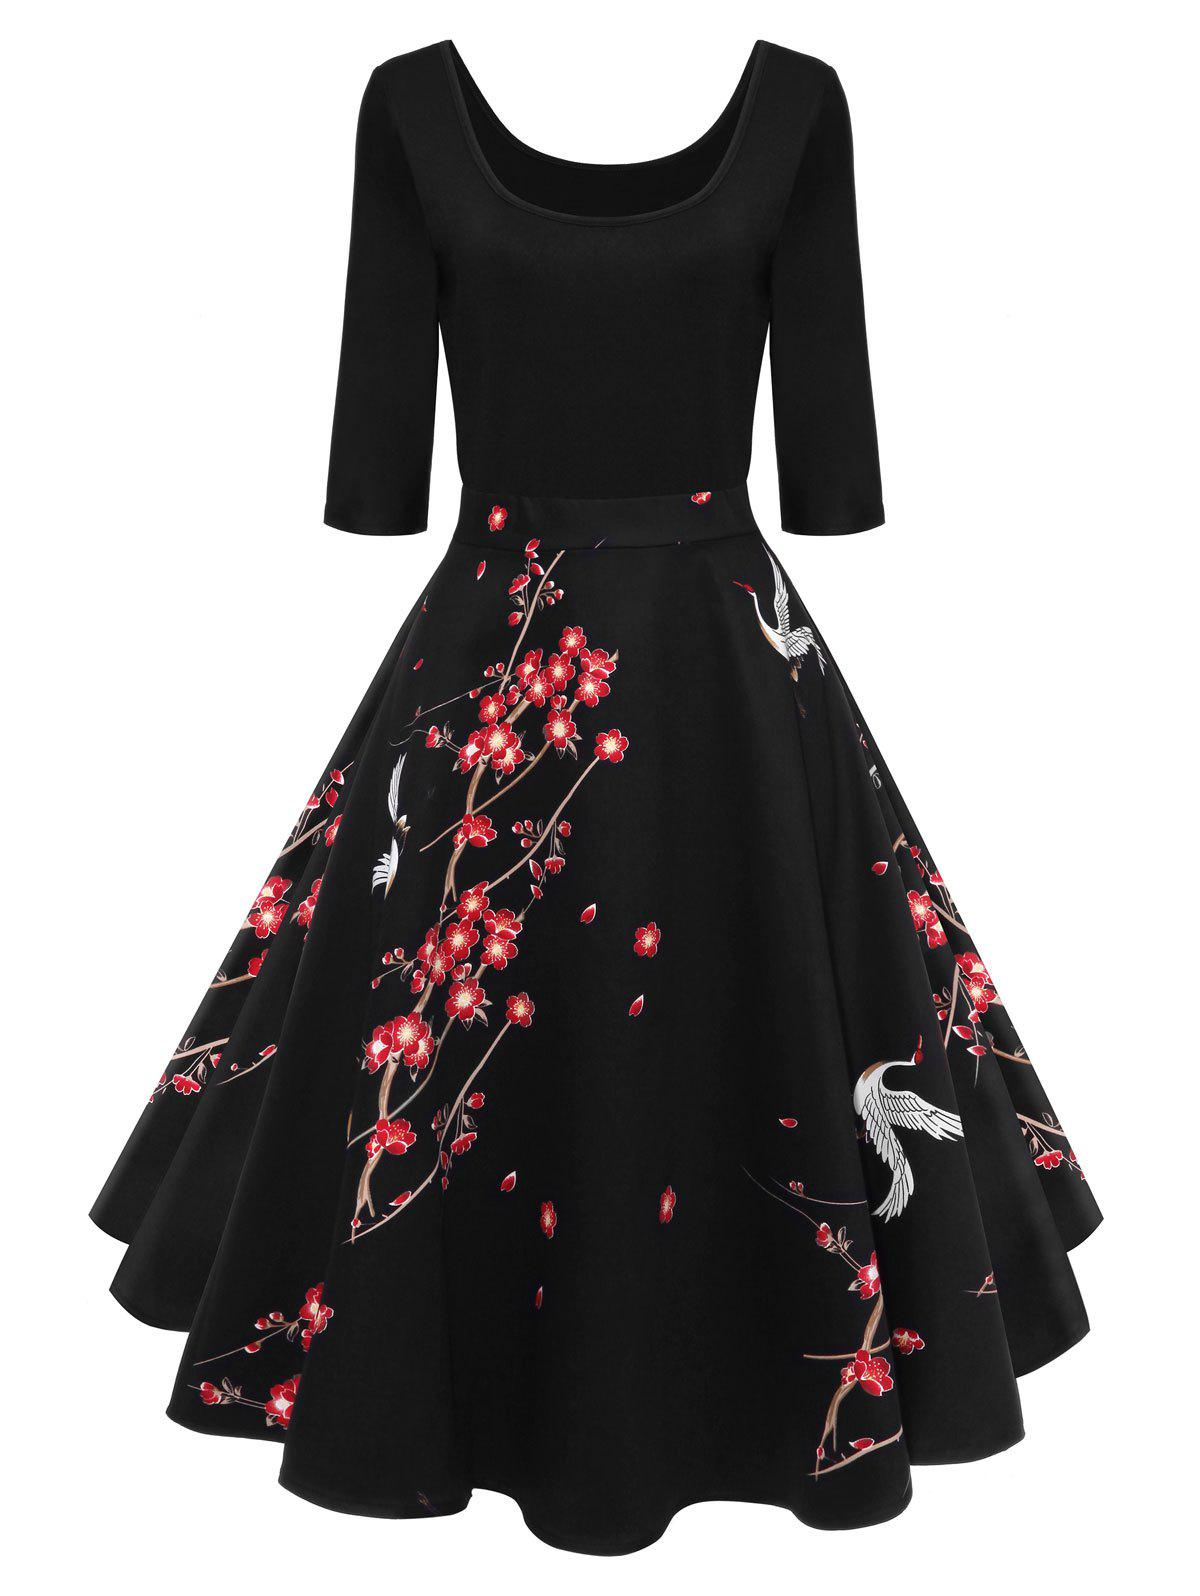 Vintage Wintersweet Print Fit and Flare DressWOMEN<br><br>Size: L; Color: BLACK; Style: Vintage; Material: Cotton,Polyester; Silhouette: A-Line; Dresses Length: Knee-Length; Neckline: U Neck; Sleeve Length: 3/4 Length Sleeves; Pattern Type: Floral; With Belt: No; Season: Fall,Spring; Weight: 0.4000kg; Package Contents: 1 x Dress;